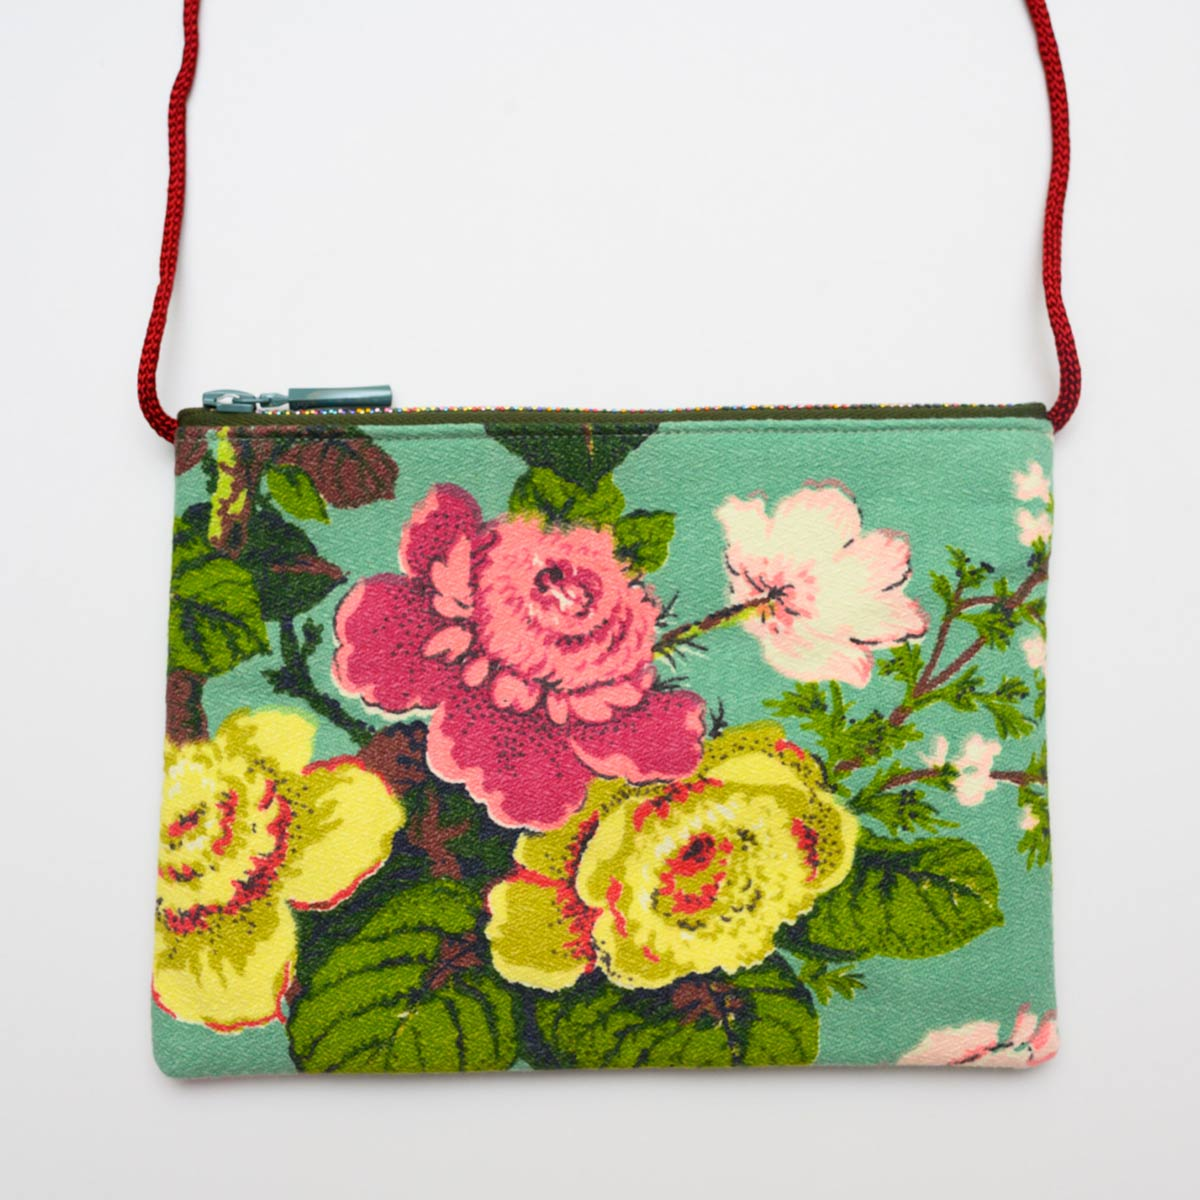 The Opera Bag – floral motif on seafoam